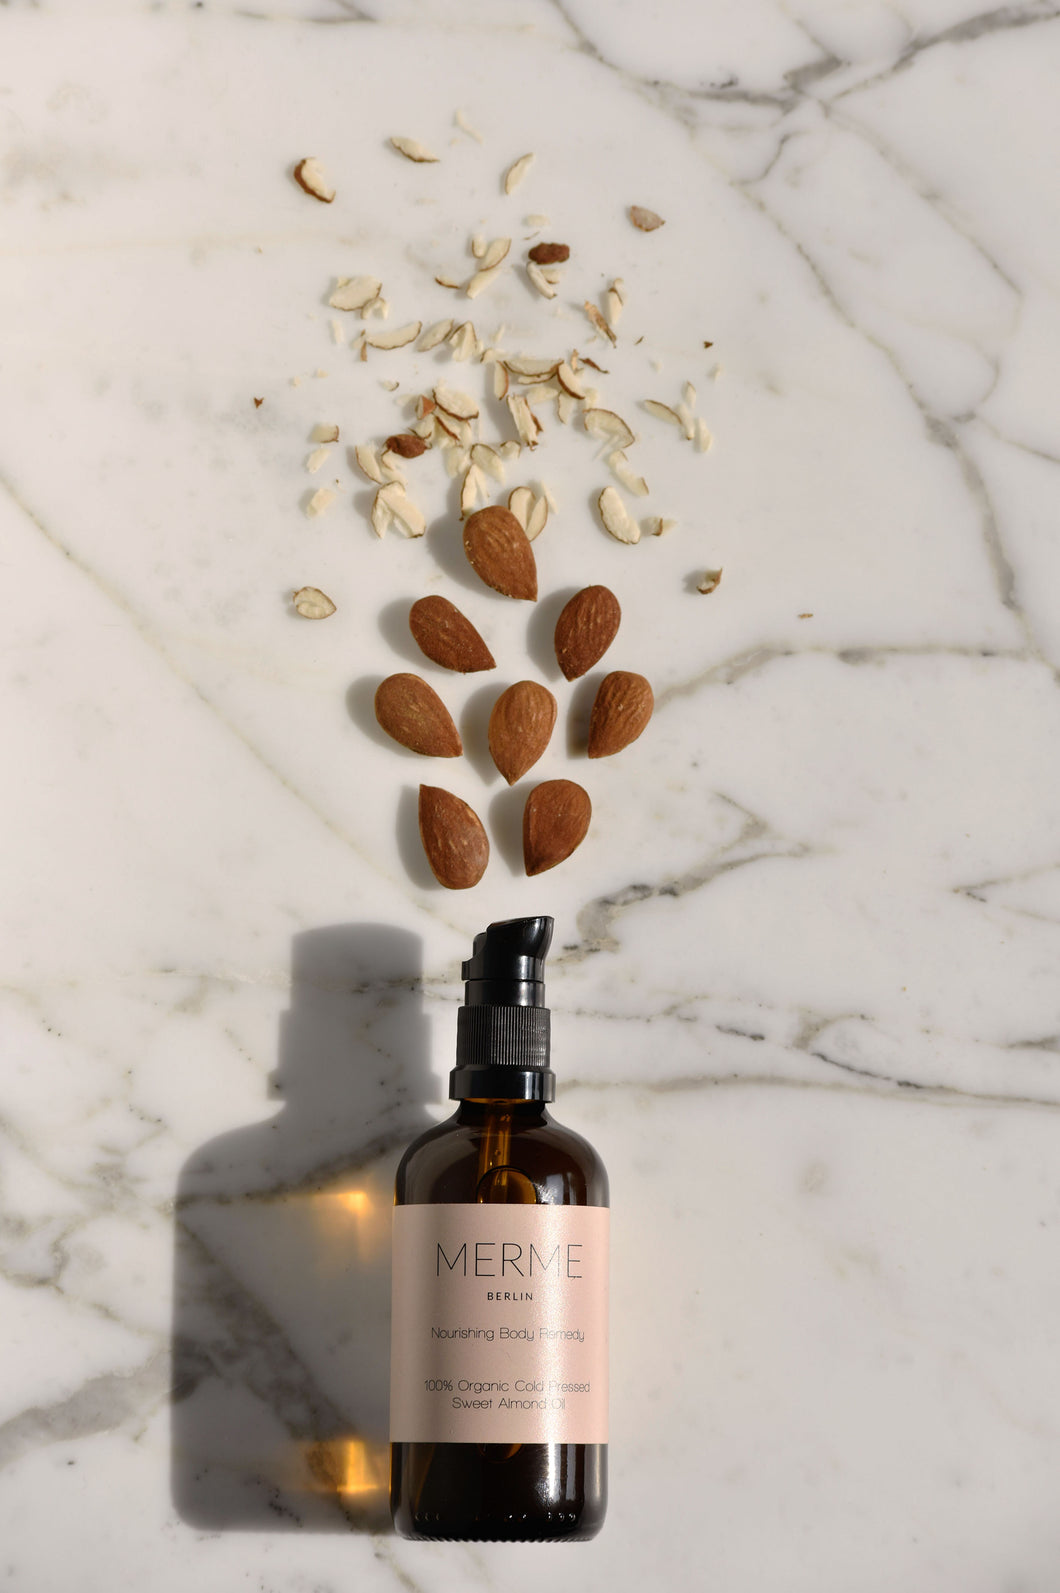 MERME Berlin NOURISHING BODY REMEDY - 100% Organic Sweet Almond Oil